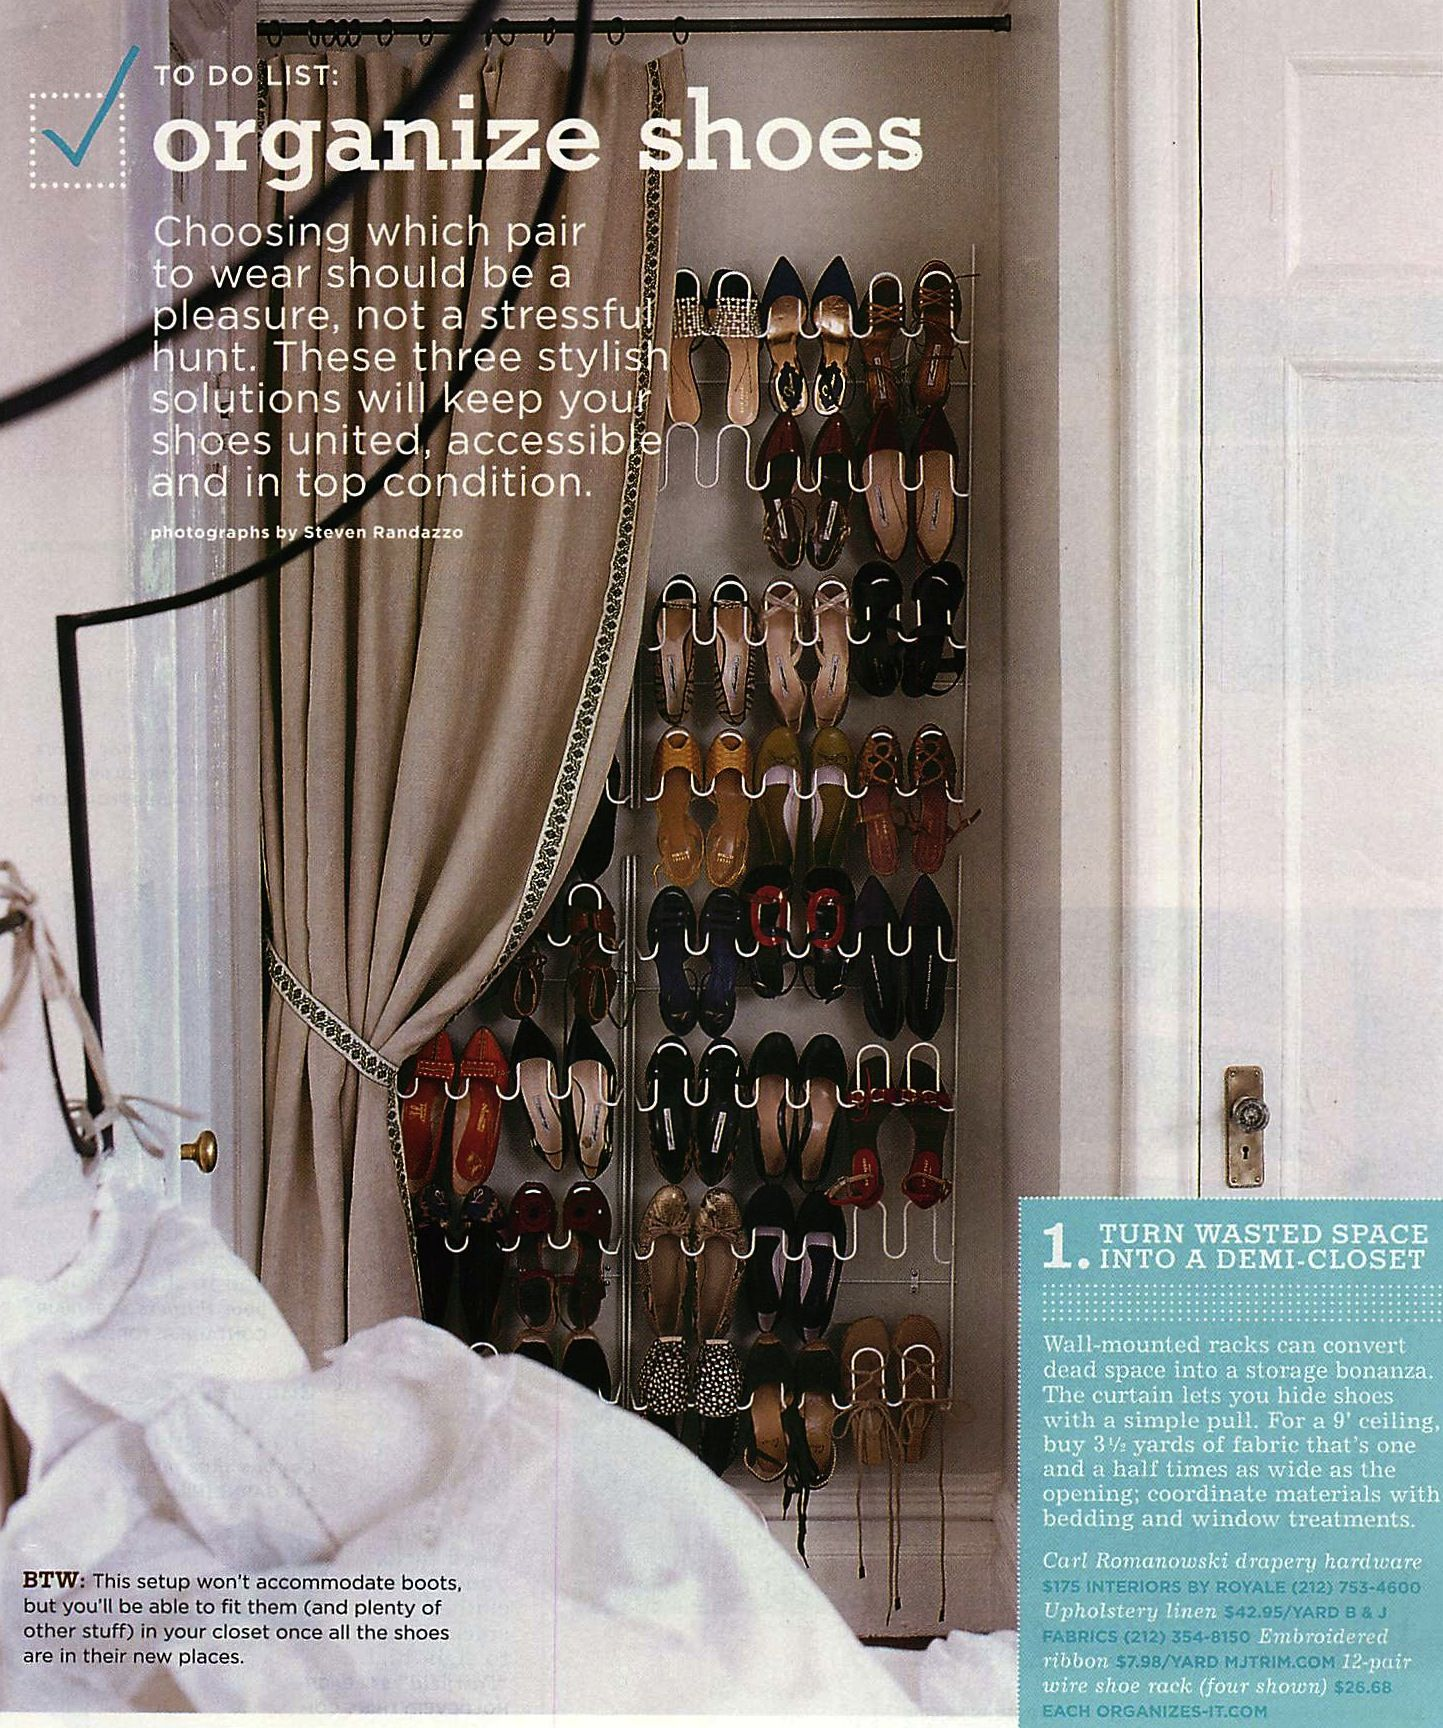 How To Organize Shoes...if Only. I Miss My Korean Shoe Closet